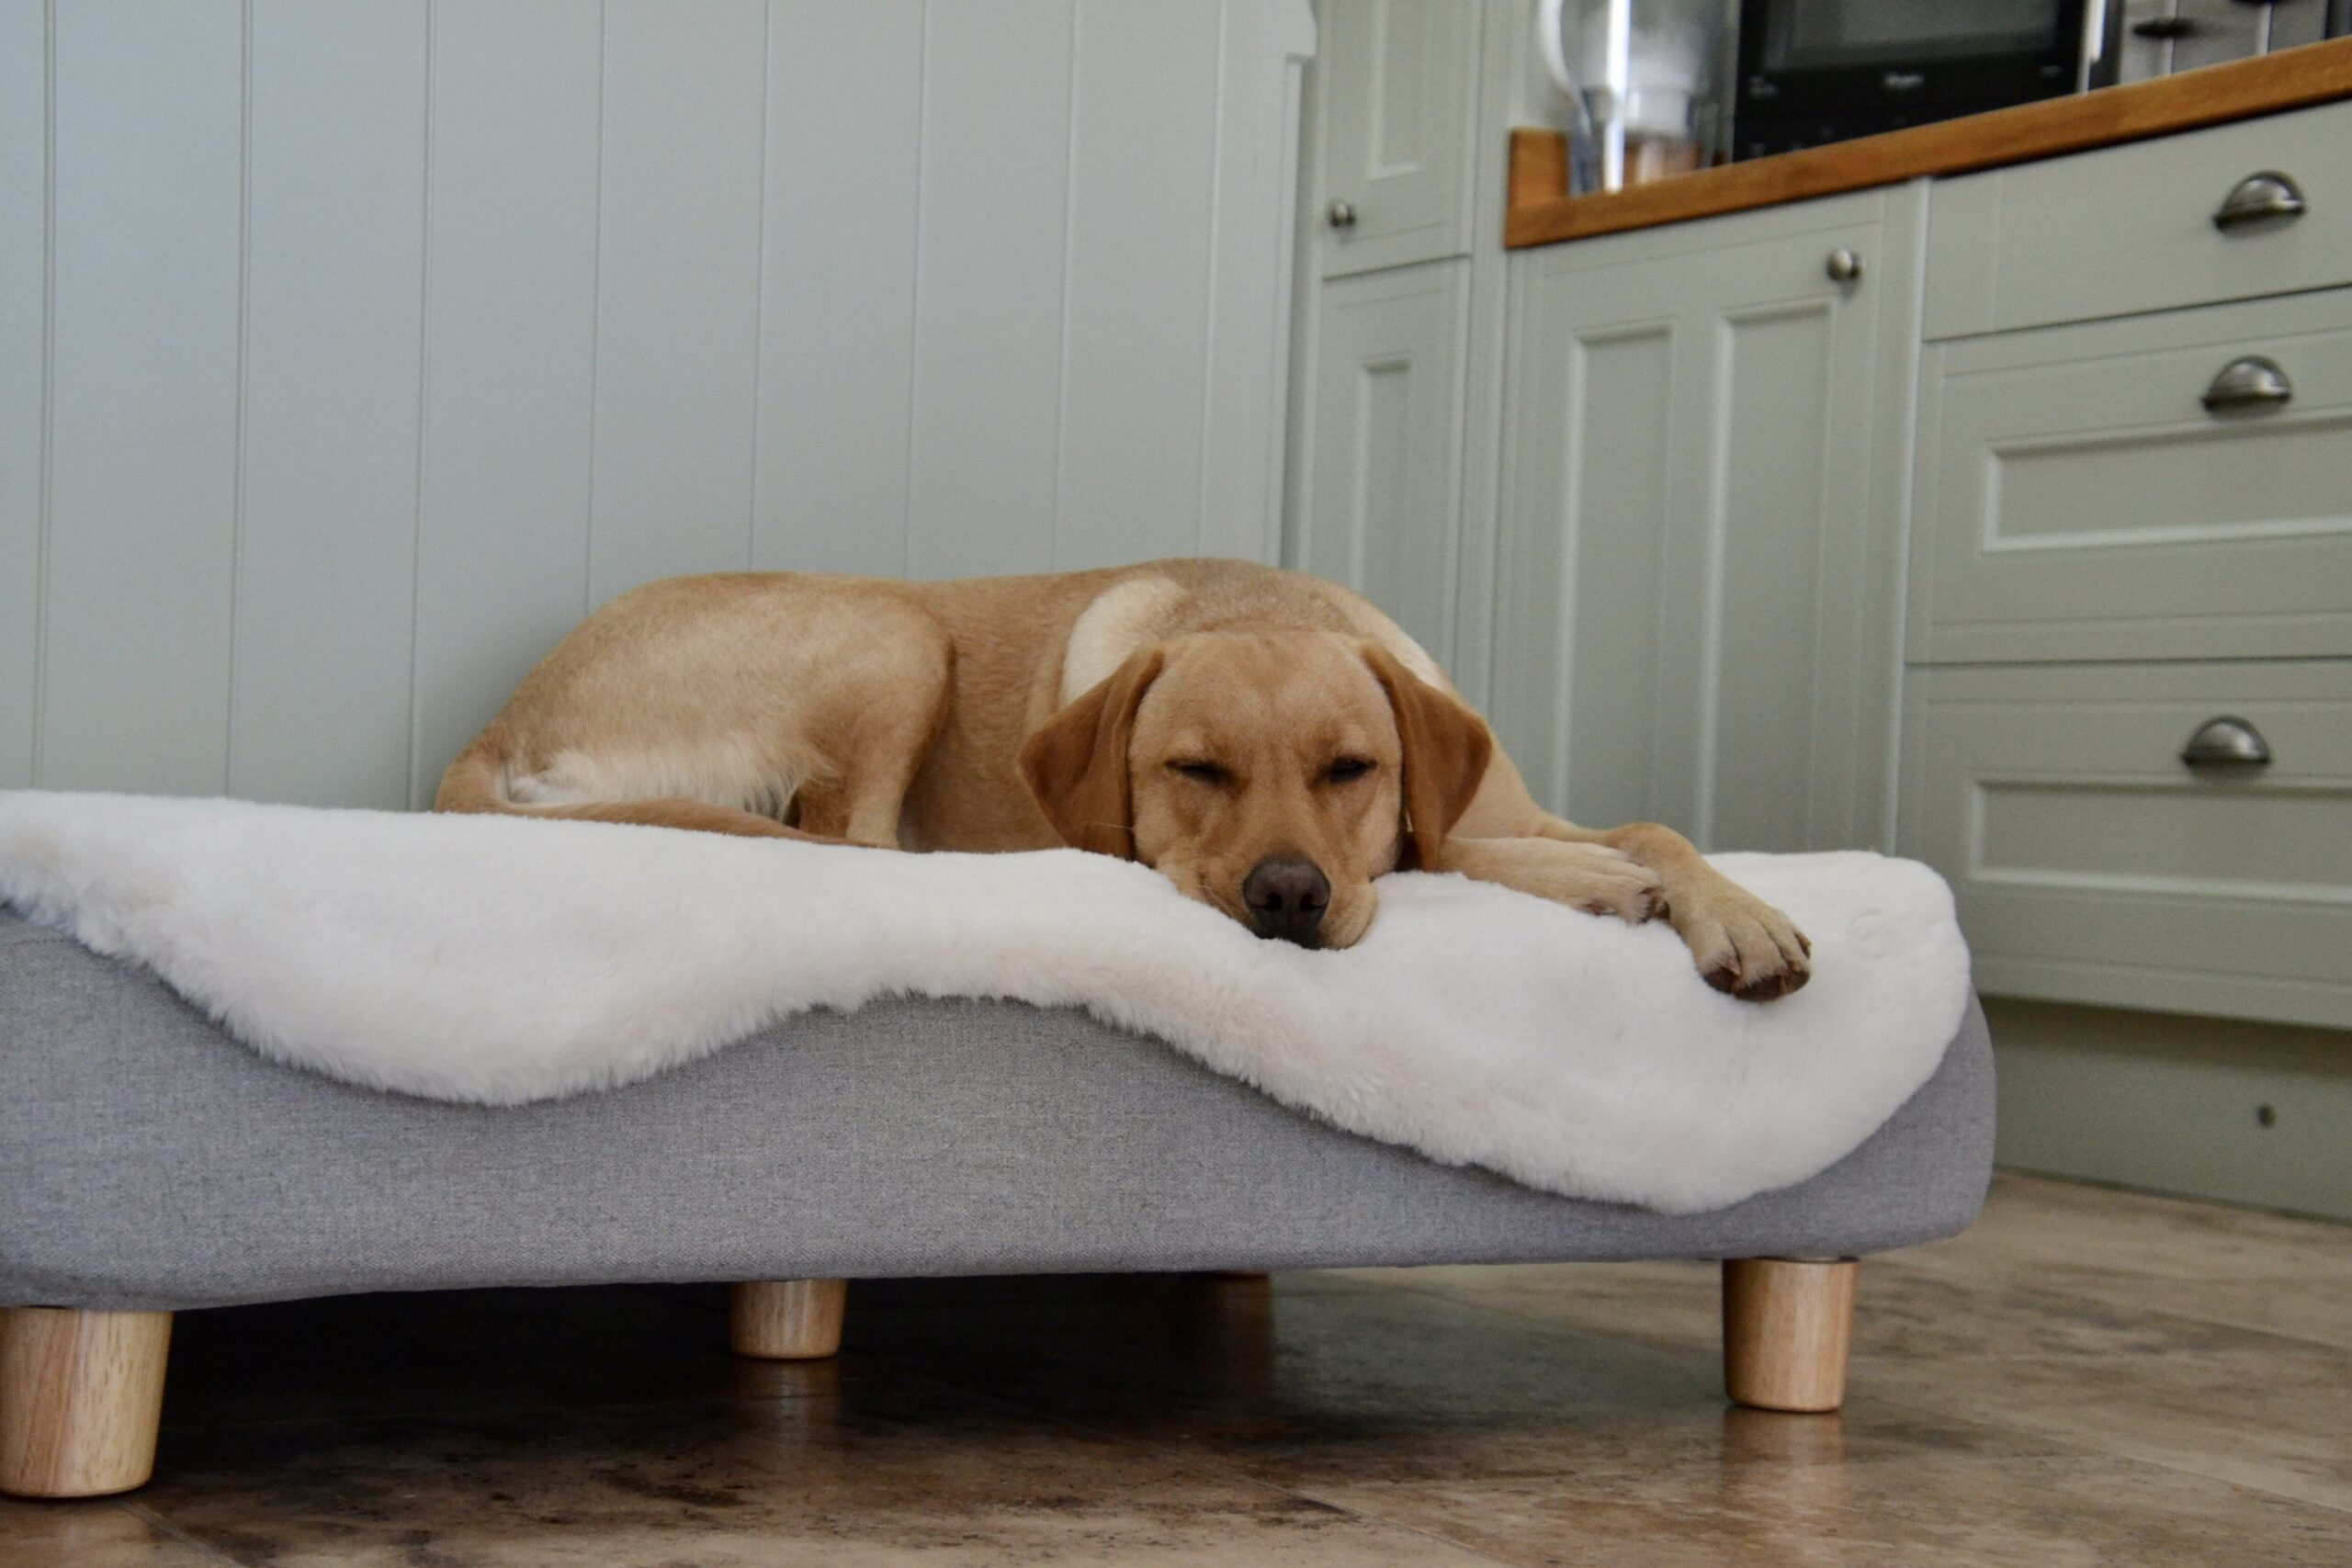 A Labrador lying on a Topology bed